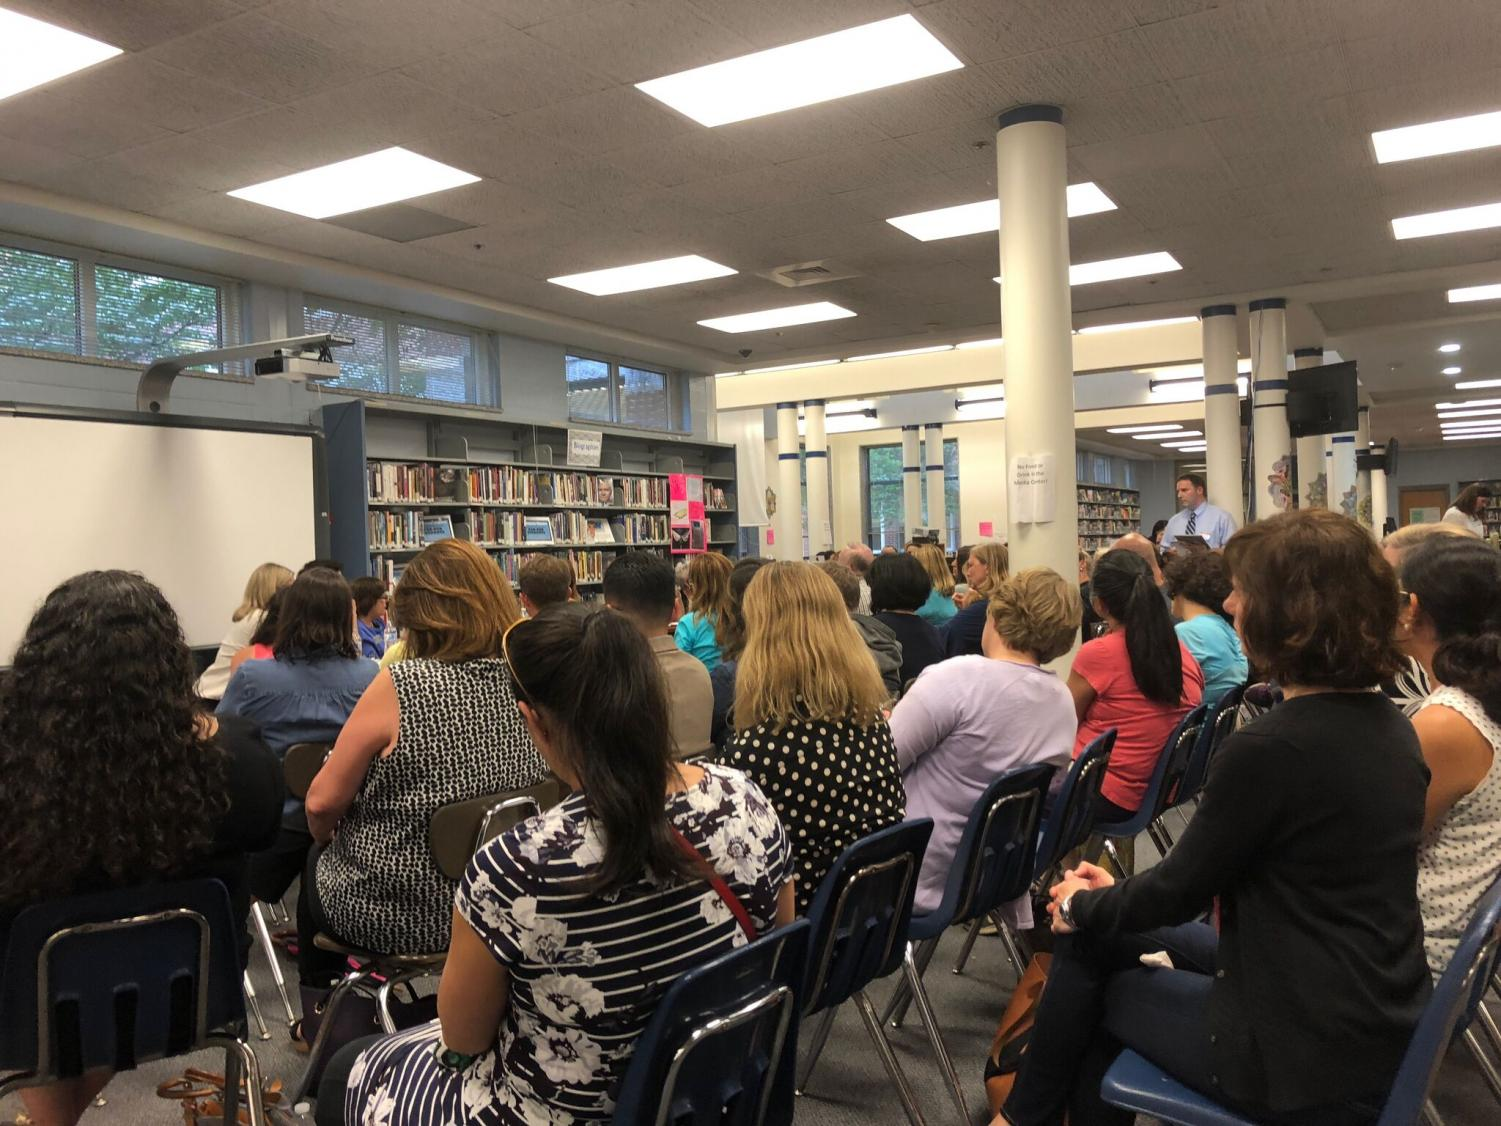 The county Board of Education held a community meeting to discuss curriculums, class sizes and mental health. These meetings are held every three years in the Whitman cluster. Photo by Meera Dahiya.